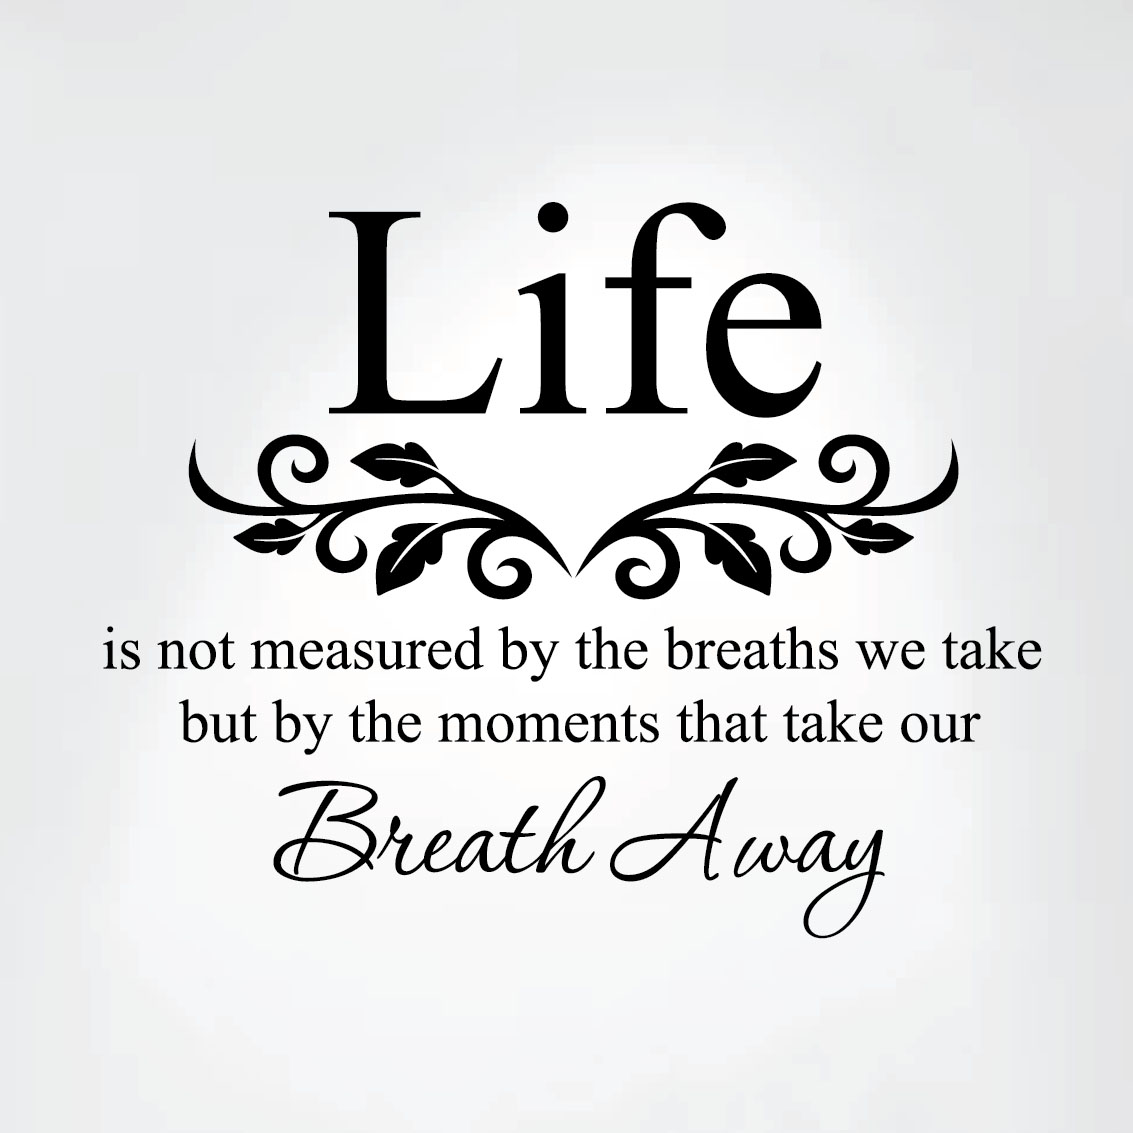 Life Is Not Measured By The Breaths We Take Vinyl Wall Decal Art